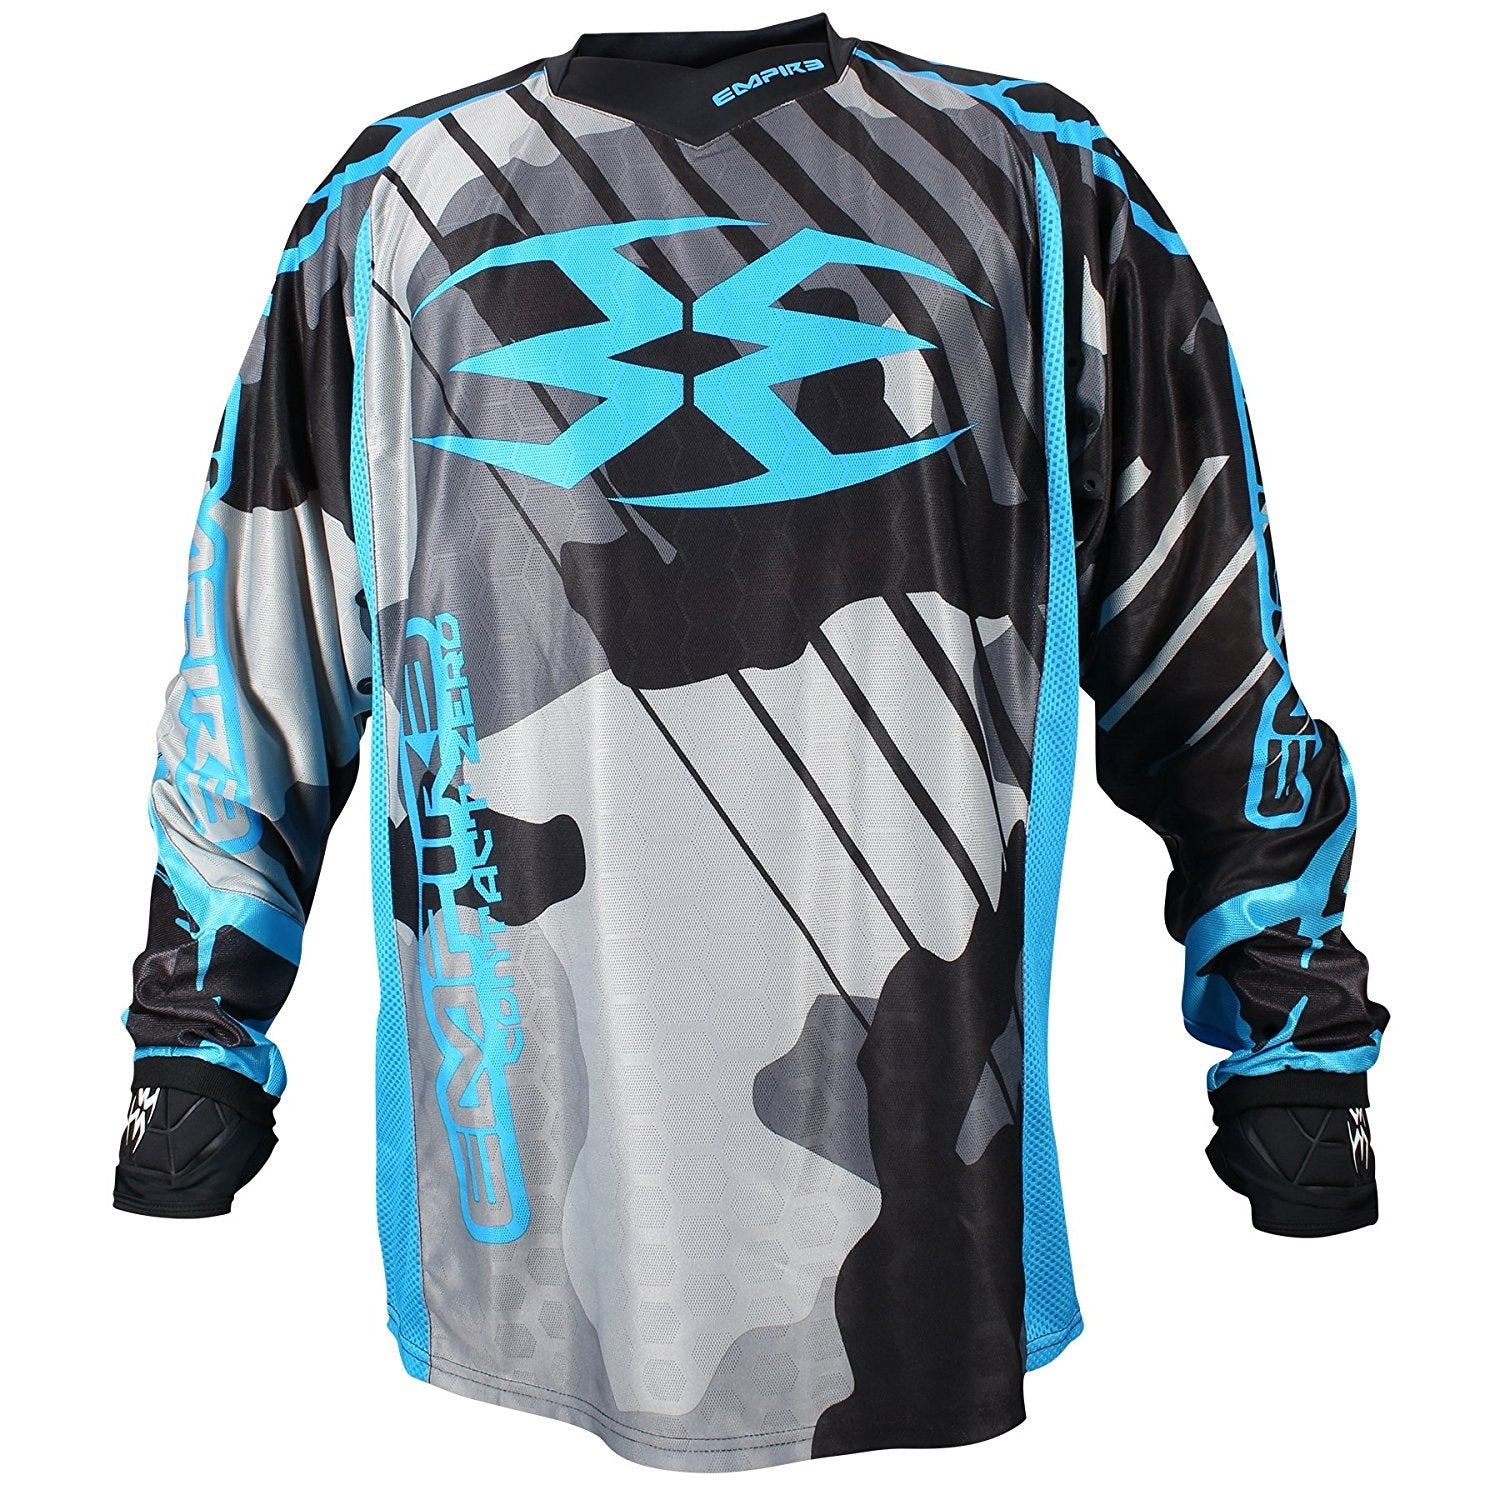 Photos of Empire Contact Zero F6 Jersey - Blue - XL. Photo taken by drpaintball.com